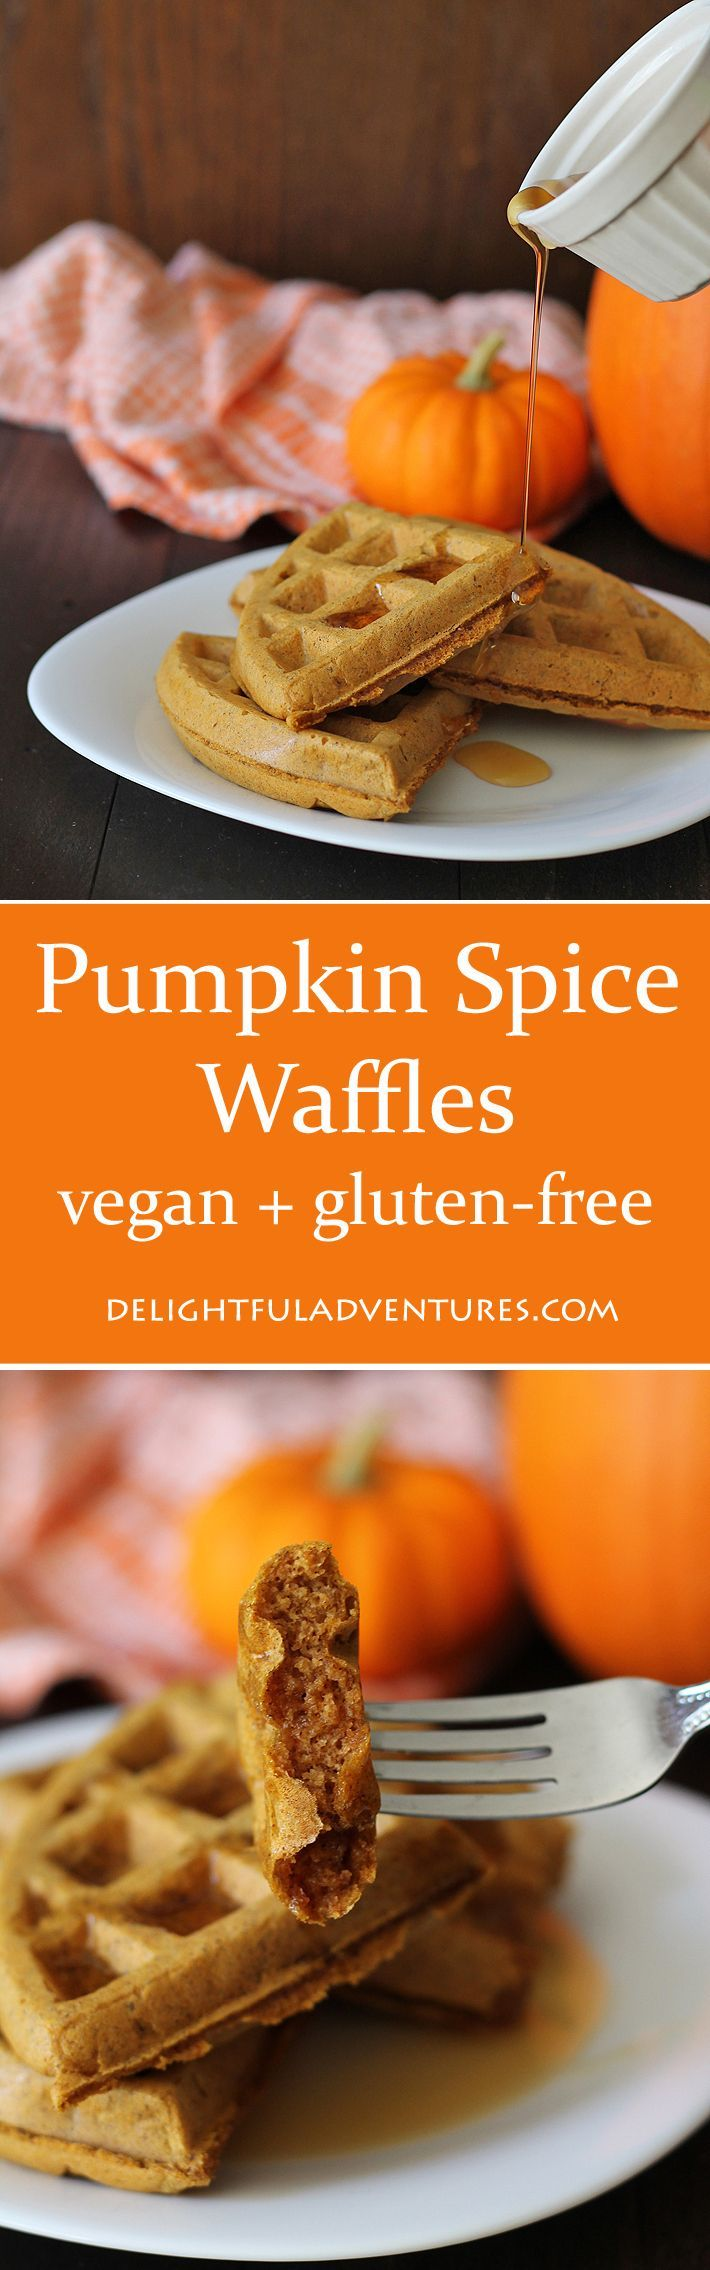 Satisfy your craving for pumpkin spice with these vegan gluten-free pumpkin spice waffles at breakfast. Crispy on the outside, soft and fluffy inside!